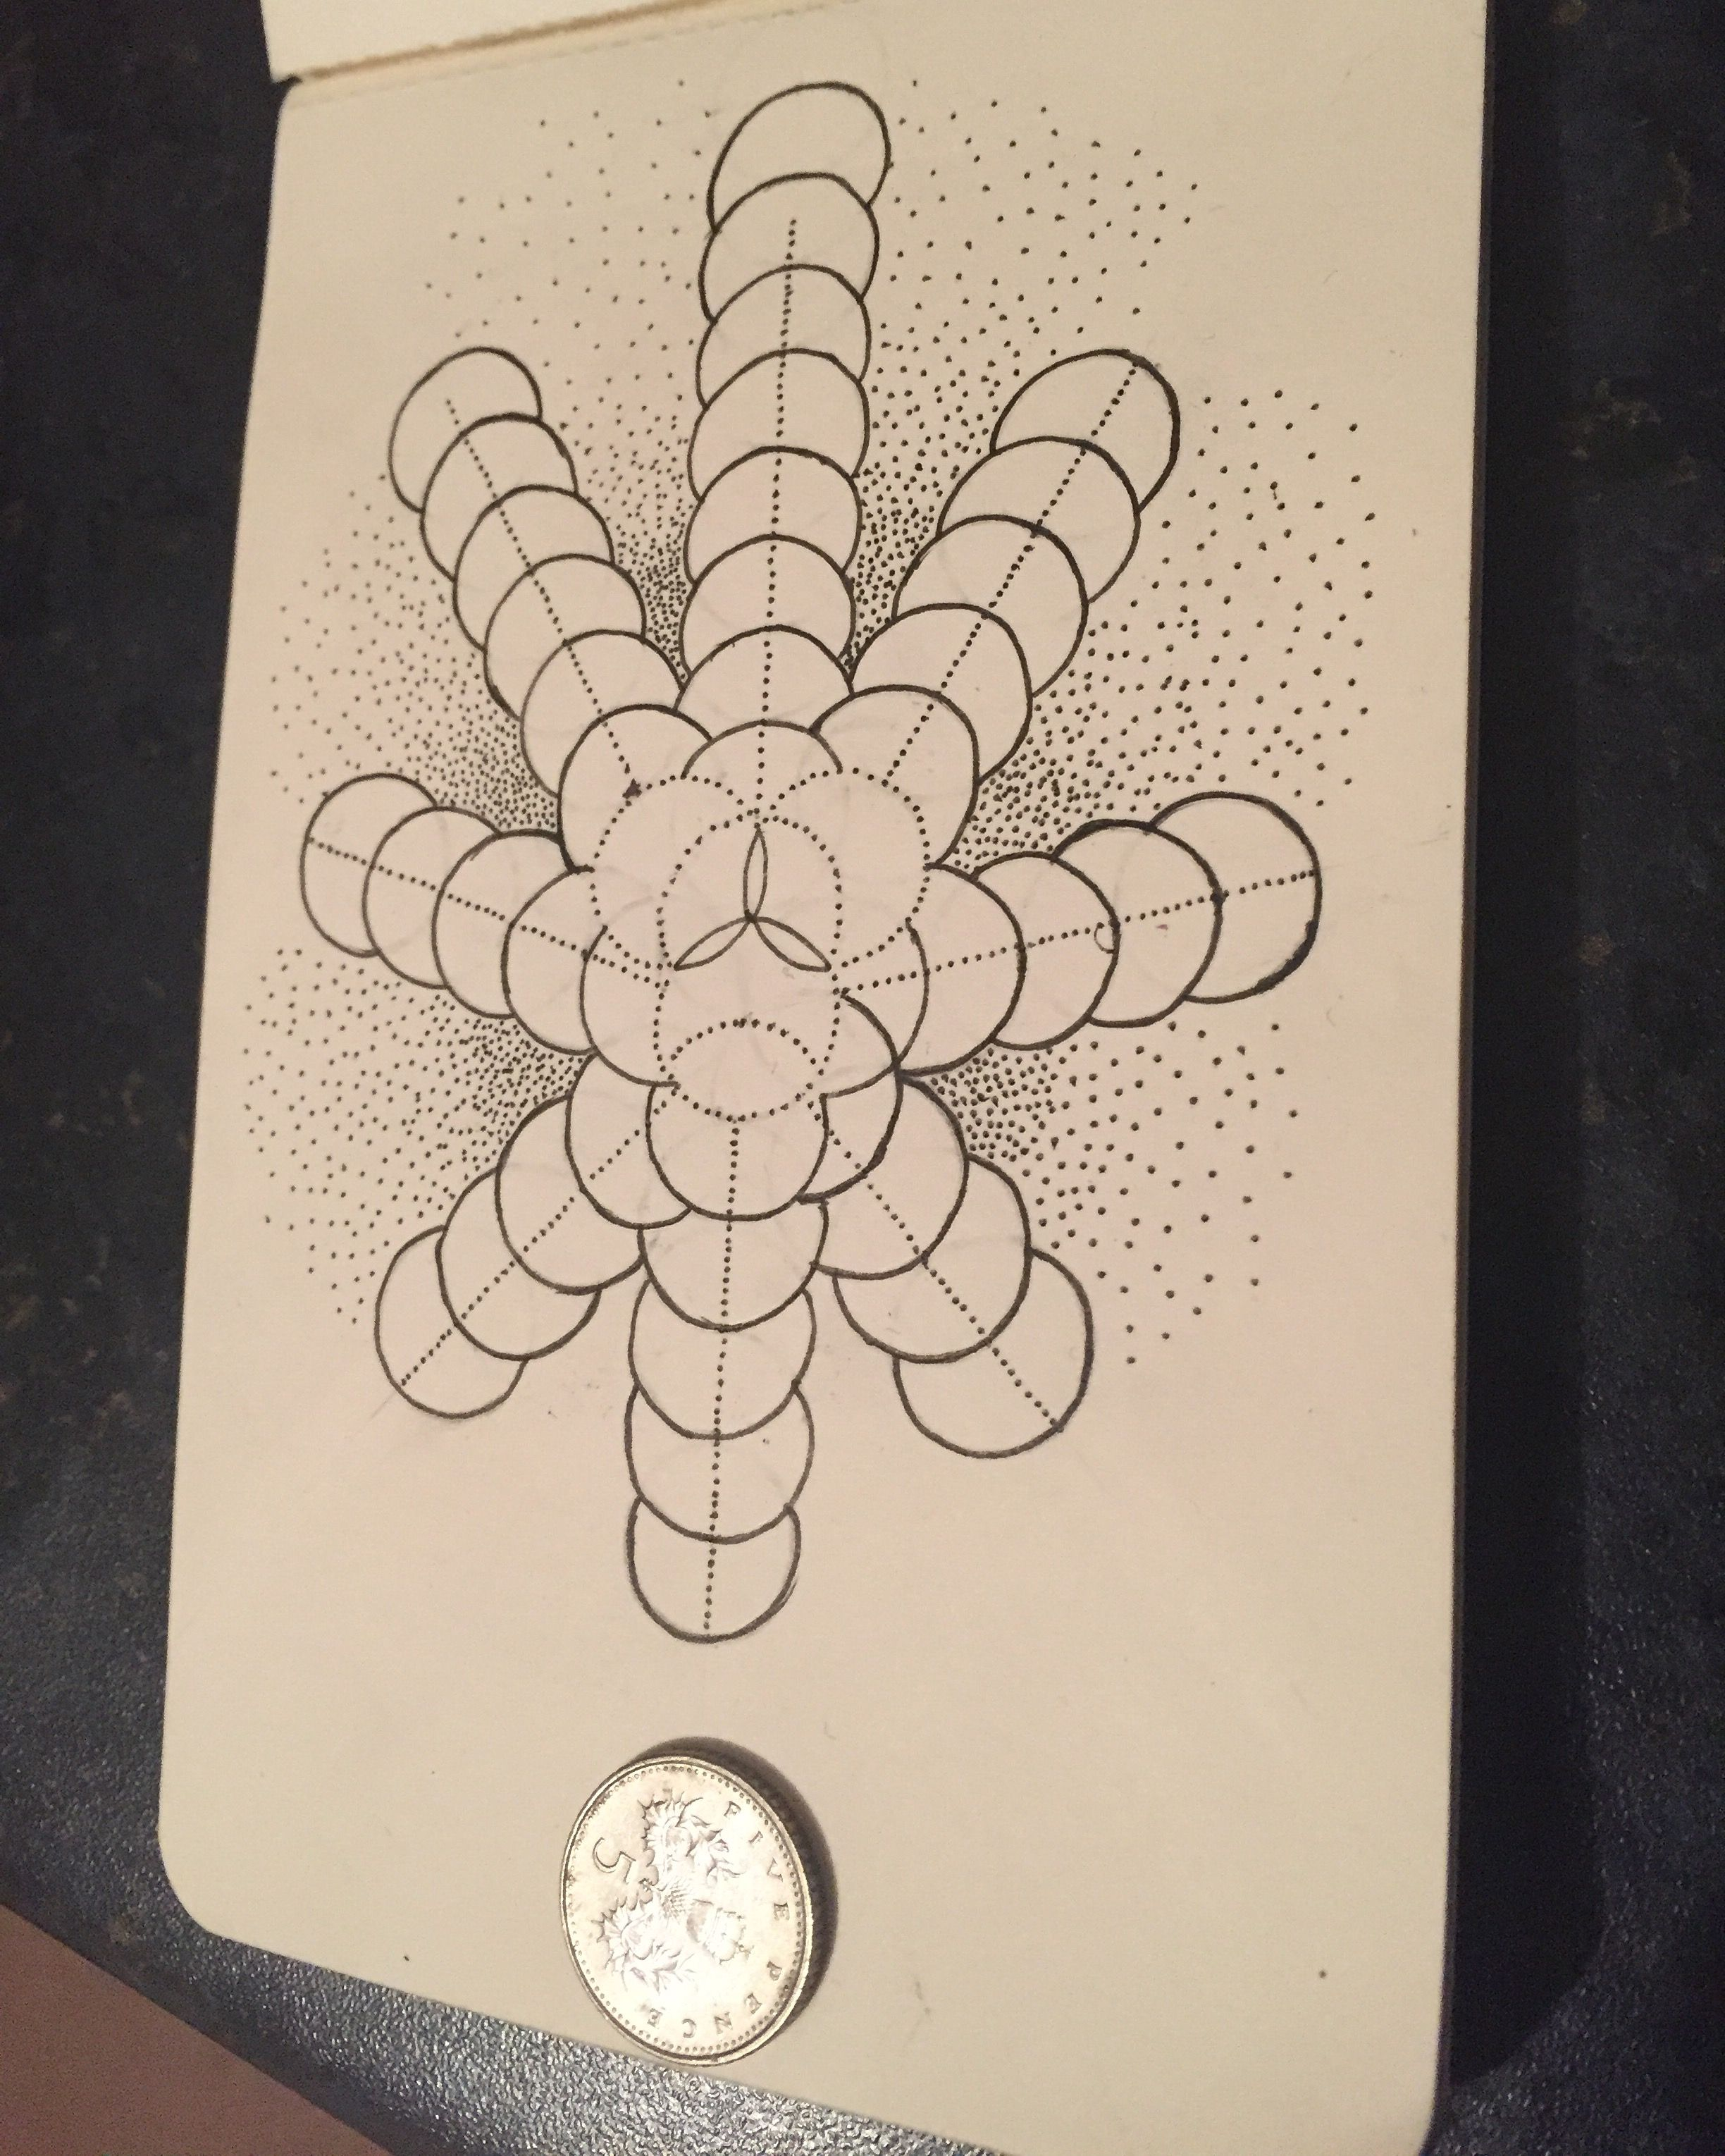 Geometry + dotwork done on my tiny sketch book